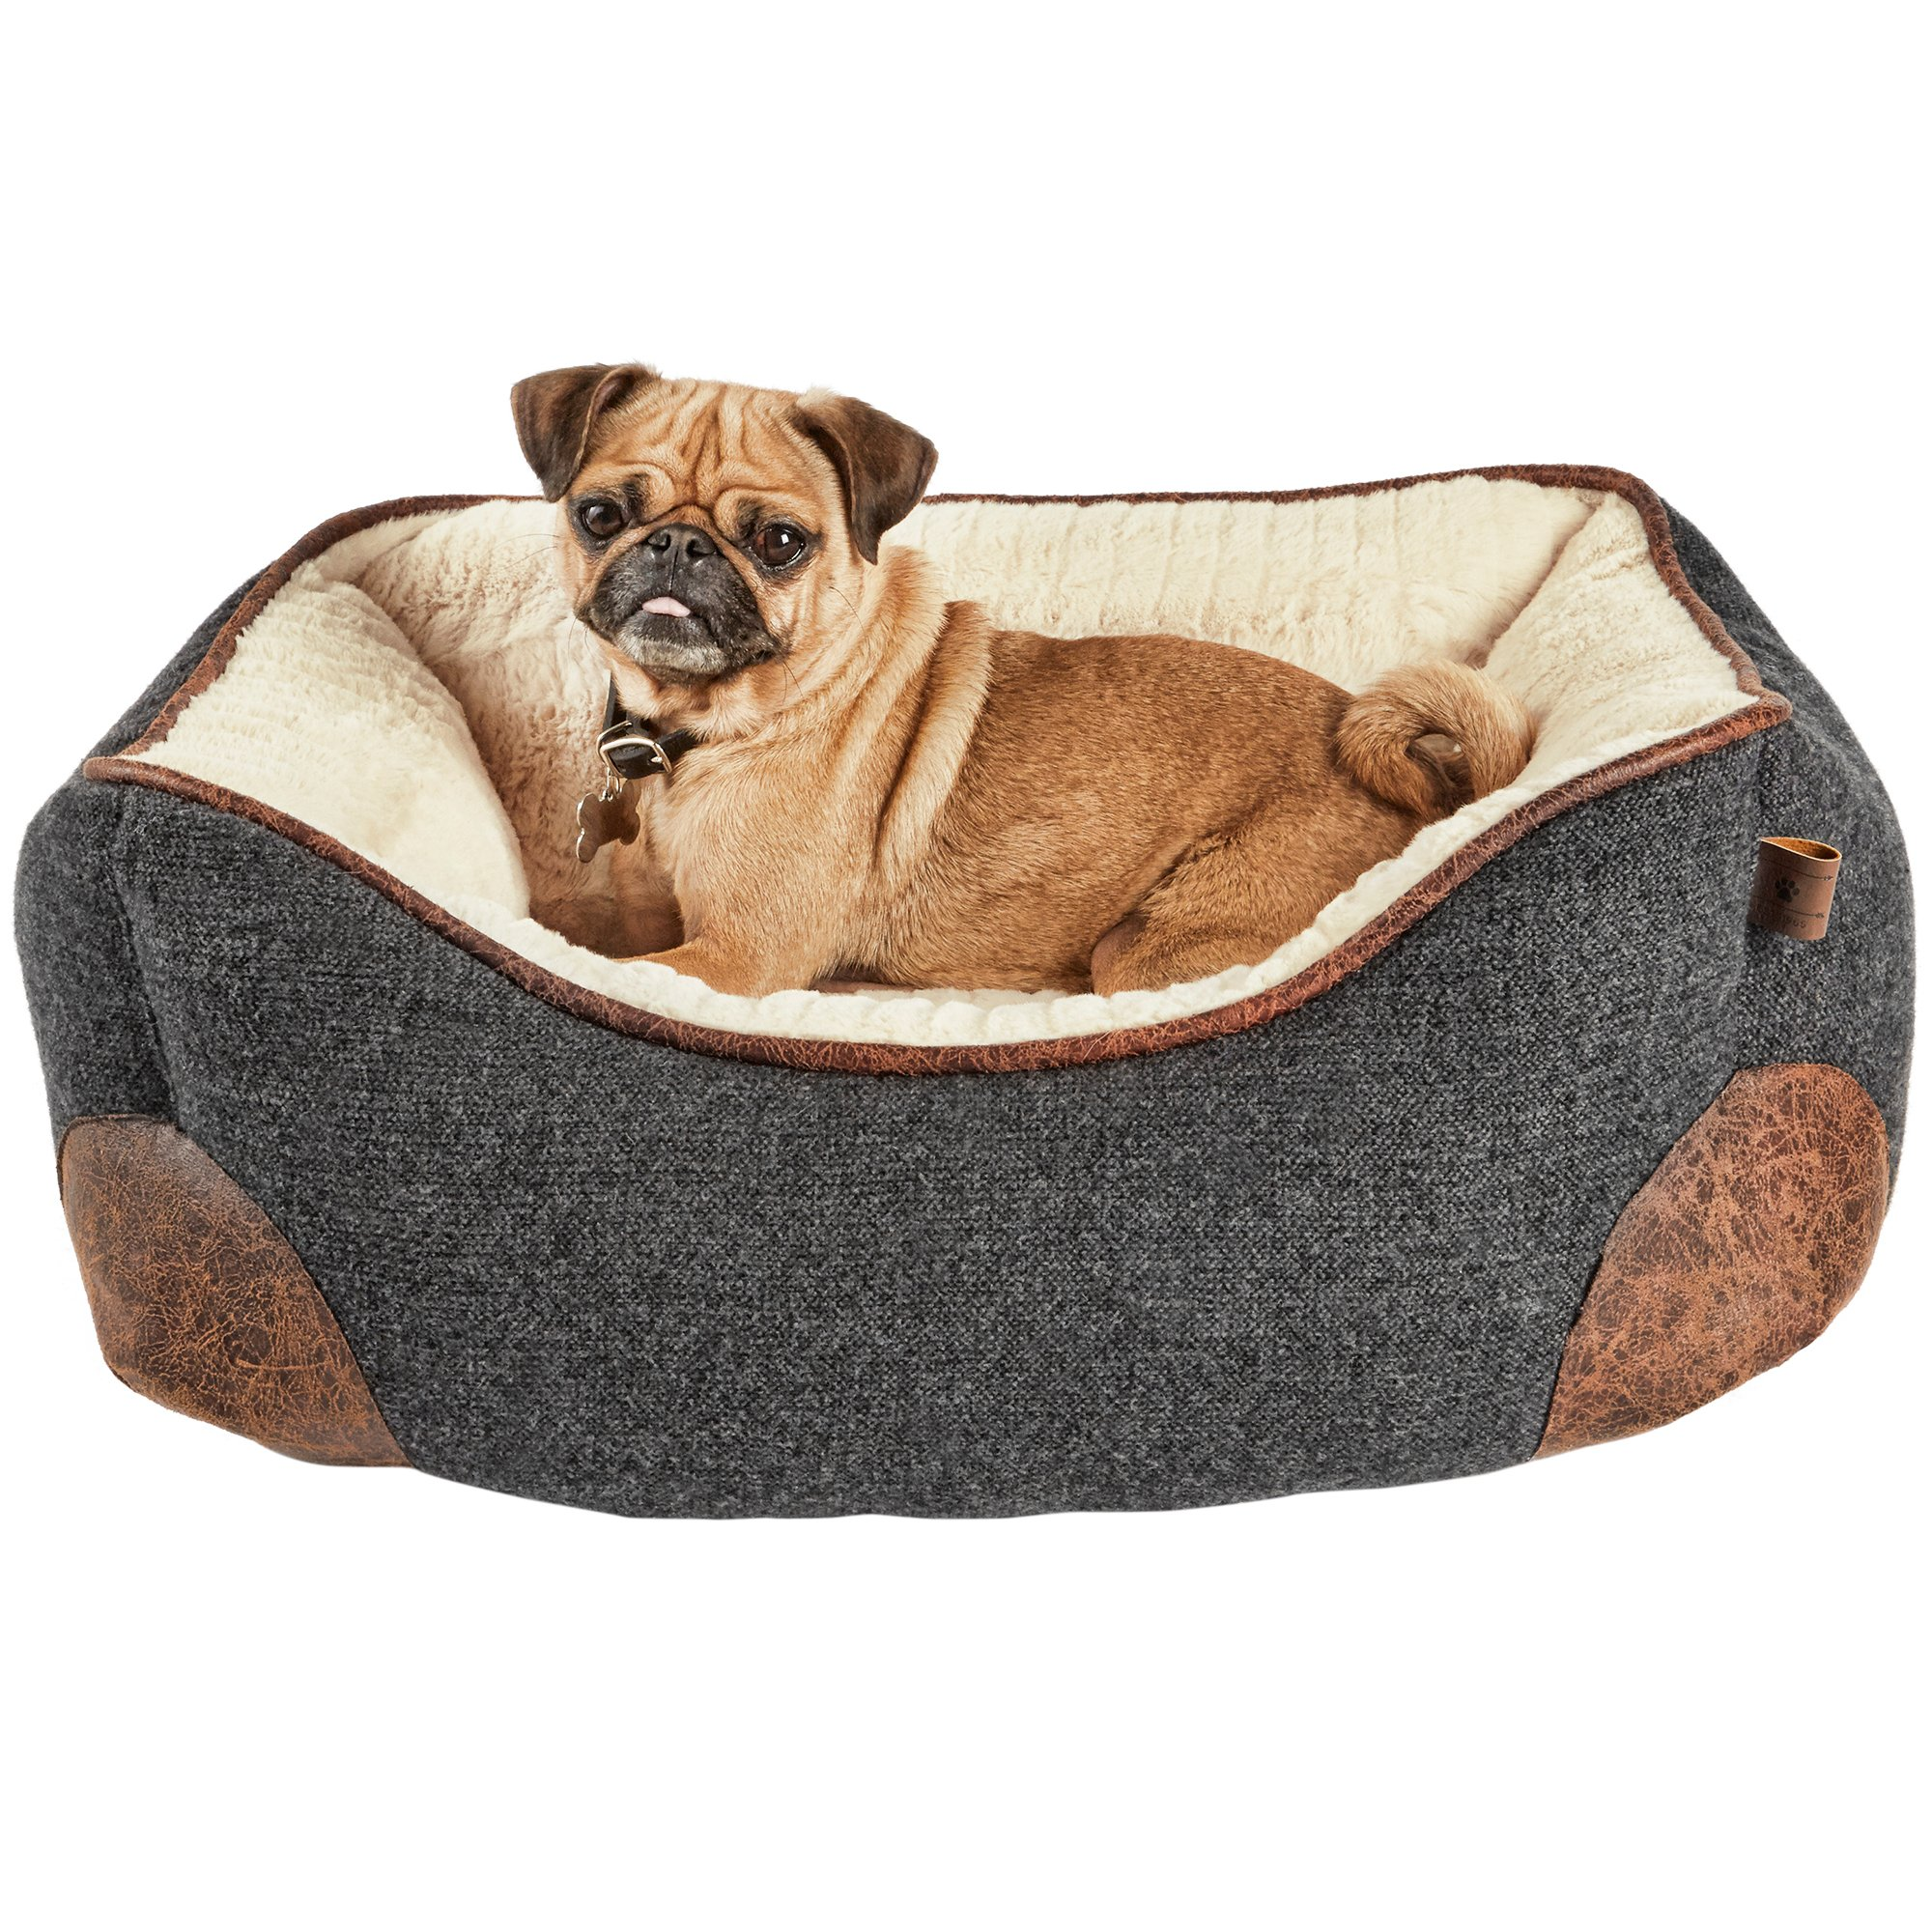 harmony grey nester memory foam dog bed - Bed